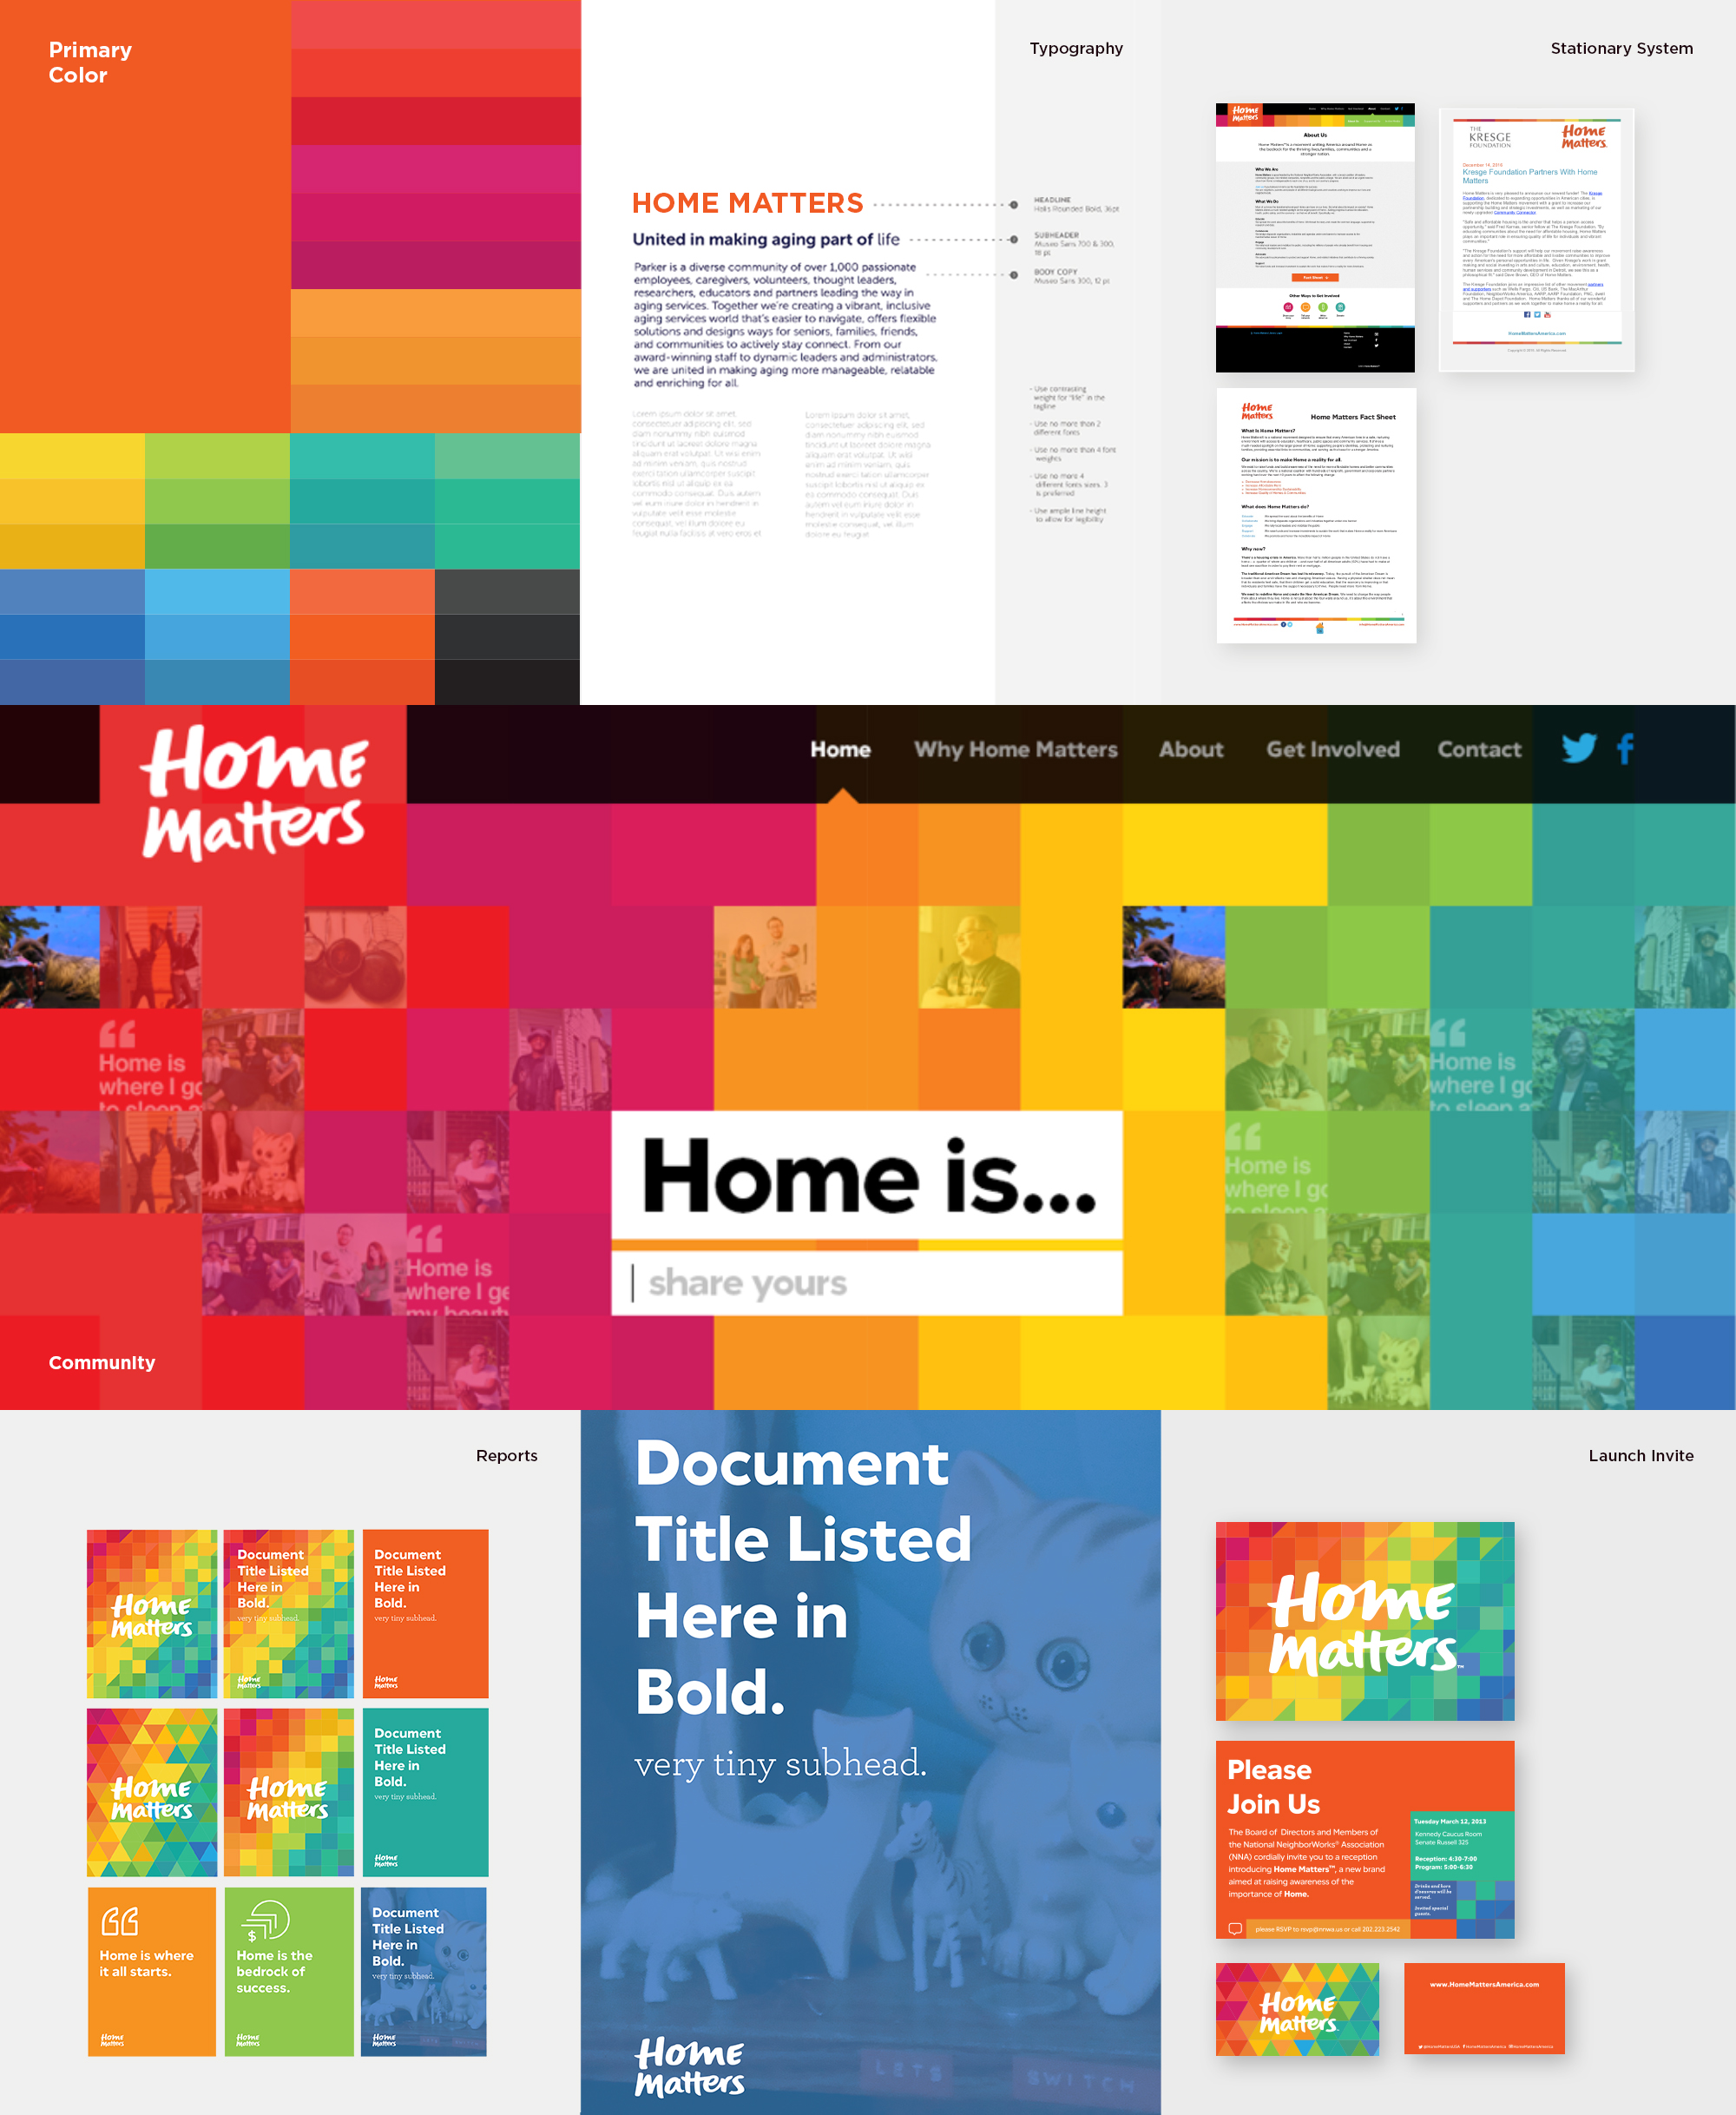 Home Matters brand guidelines